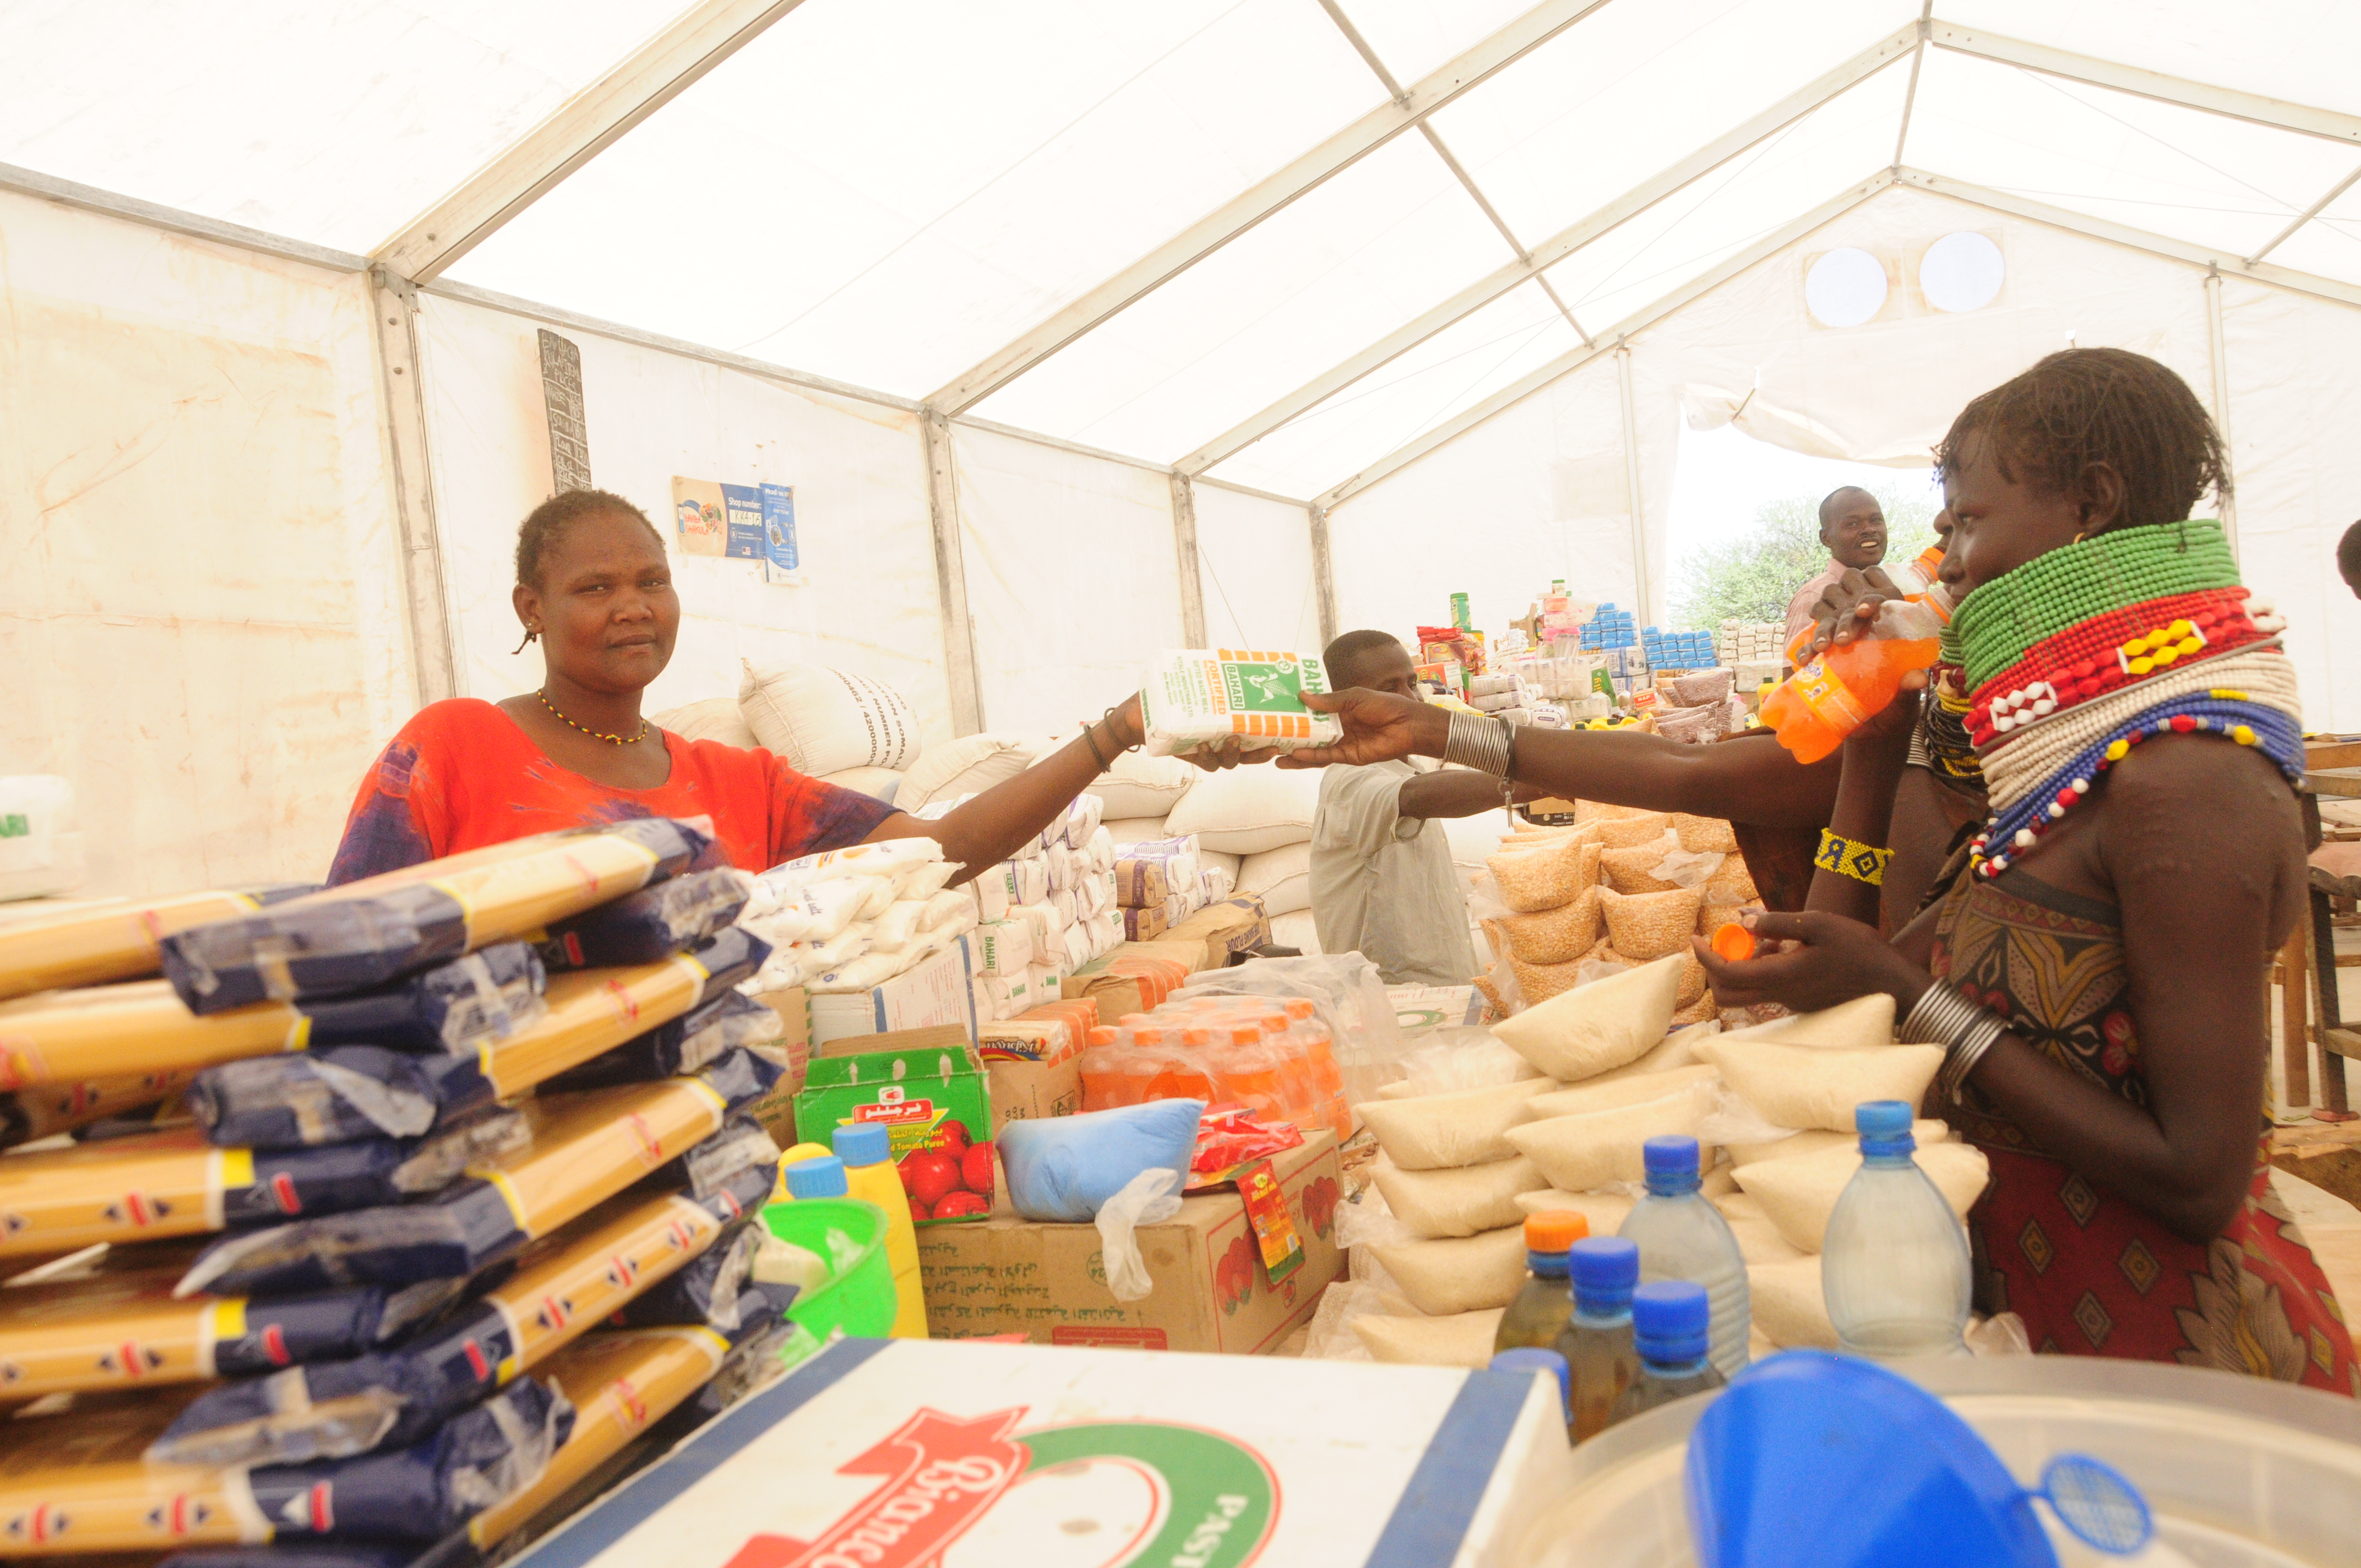 Unique EU Programme to Benefit Refugees and Host Communities in Kalobeyei